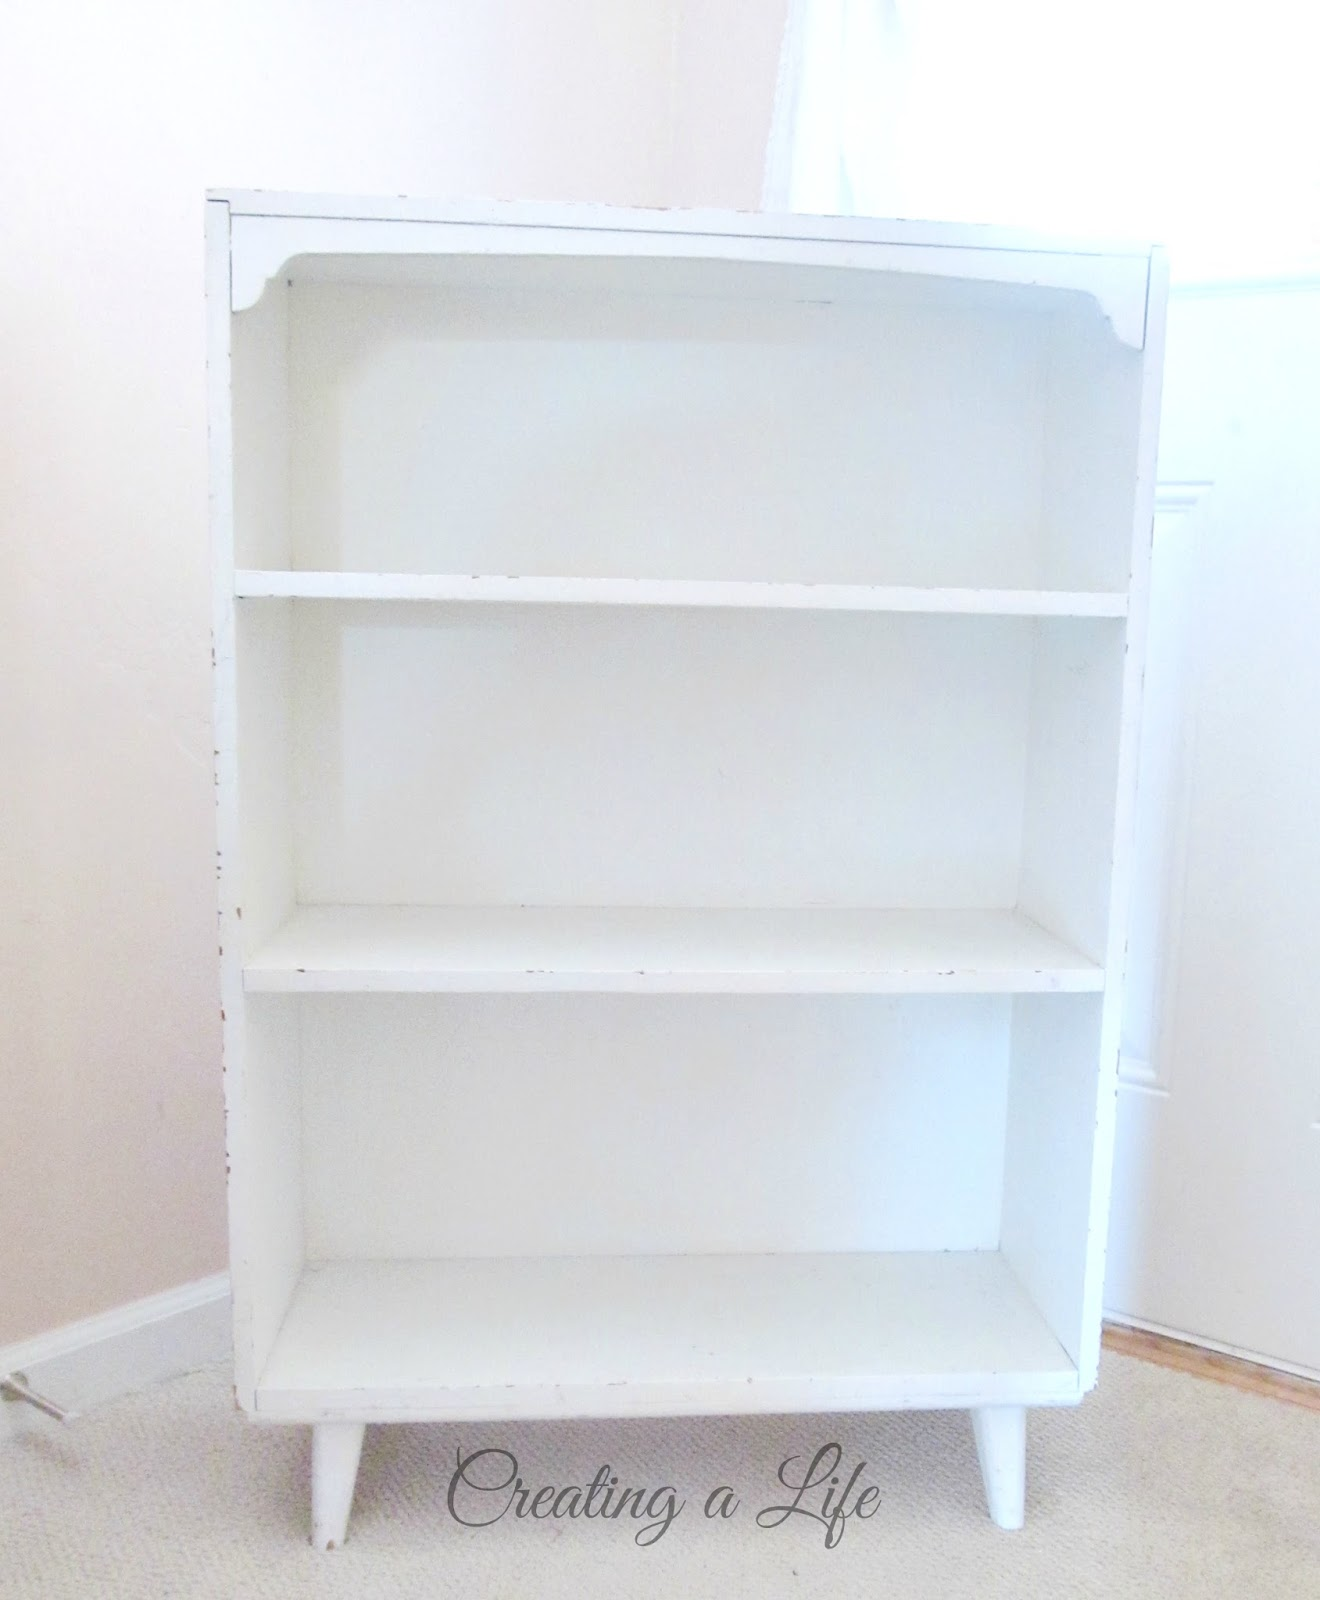 The Next Piece In Equation Is A Cute Little White Bookshelf That I Actually Paid For At Yard Sale Many Years Ago All Of Five Dollars Think